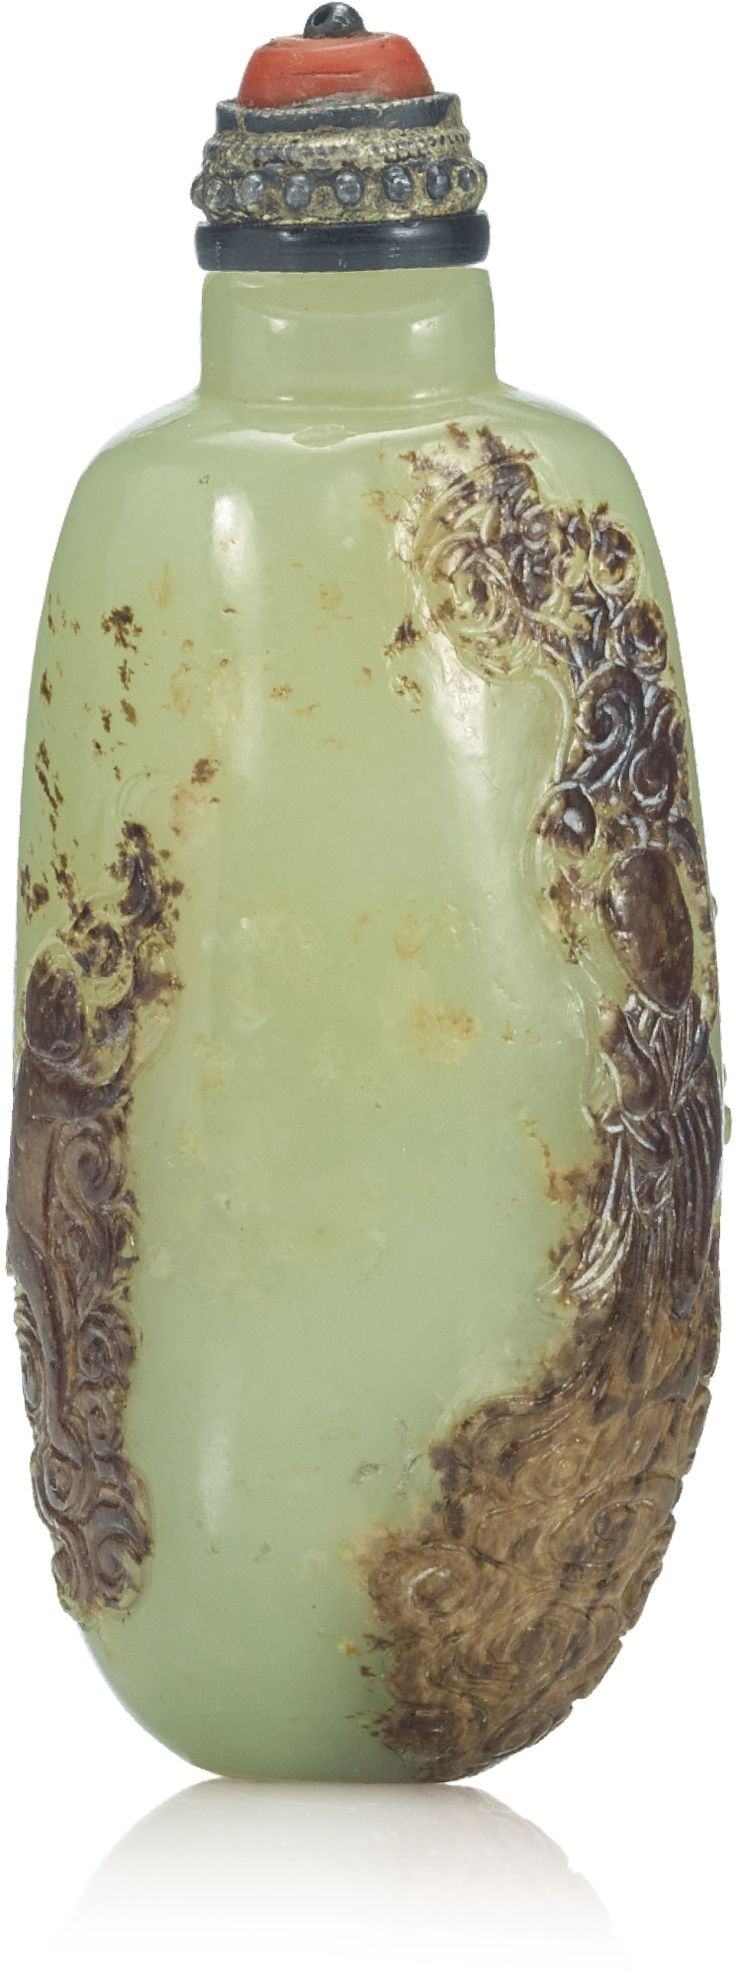 PROPERTY FROM THE COLLECTION OF ROBERT AND MAURINE MUNTZ A YELLOW AND RUSSET JADE 'IMMORTAL' SNUFF BOTTLE QING DYNASTY, 18TH / 19TH CENTURY Estimate  2,000 — 3,000  USD